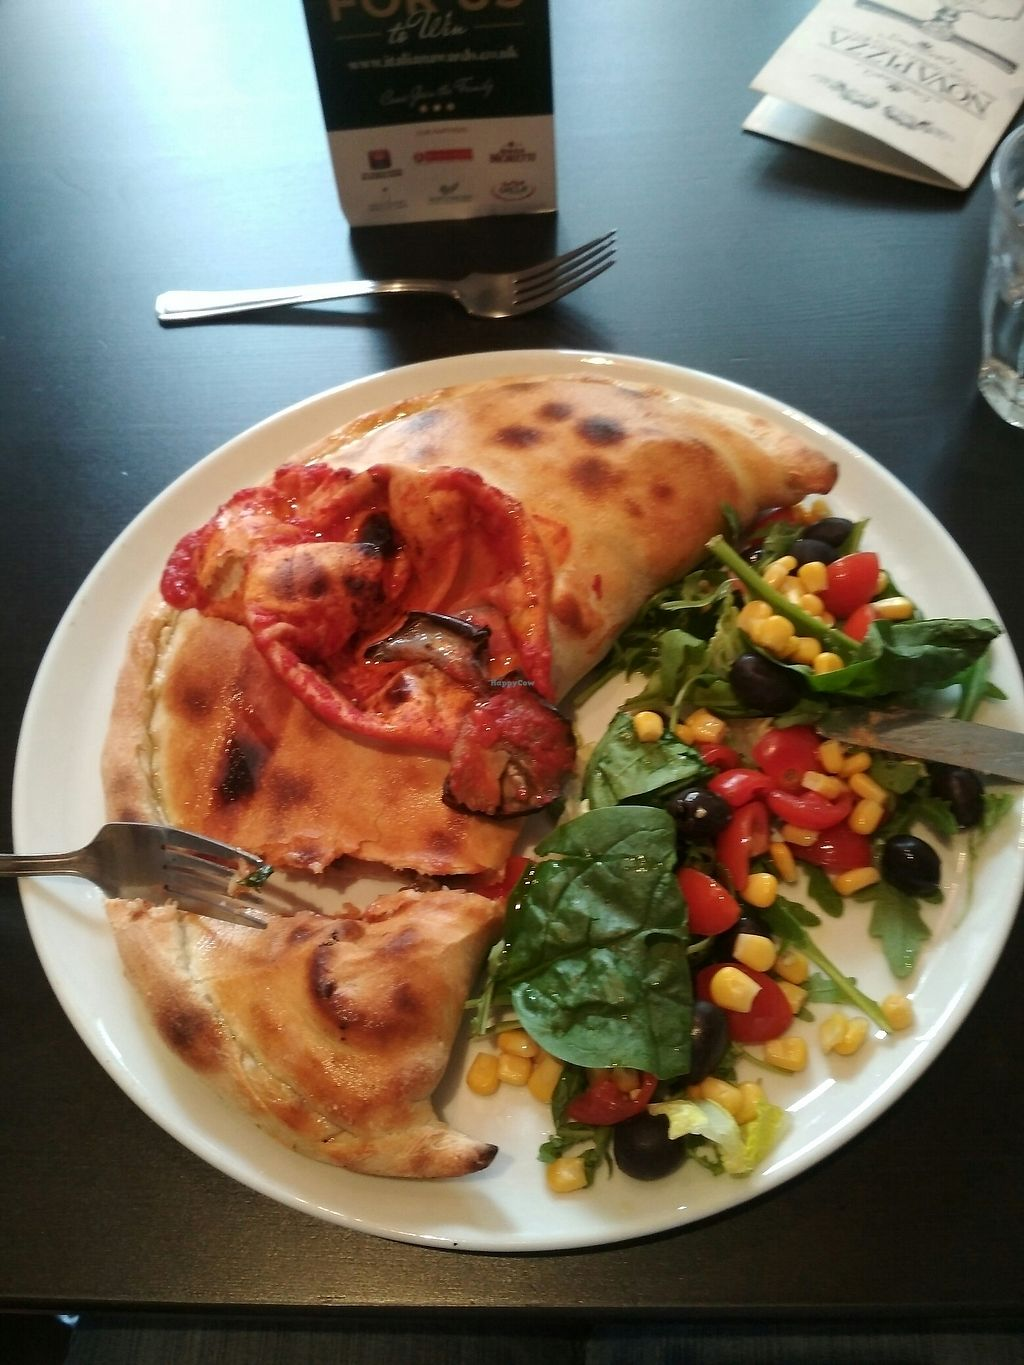 "Photo of NovaPizza Vegetarian Kitchen  by <a href=""/members/profile/PaolaNell"">PaolaNell</a> <br/>Vegan Calzone  <br/> August 15, 2017  - <a href='/contact/abuse/image/61590/292871'>Report</a>"